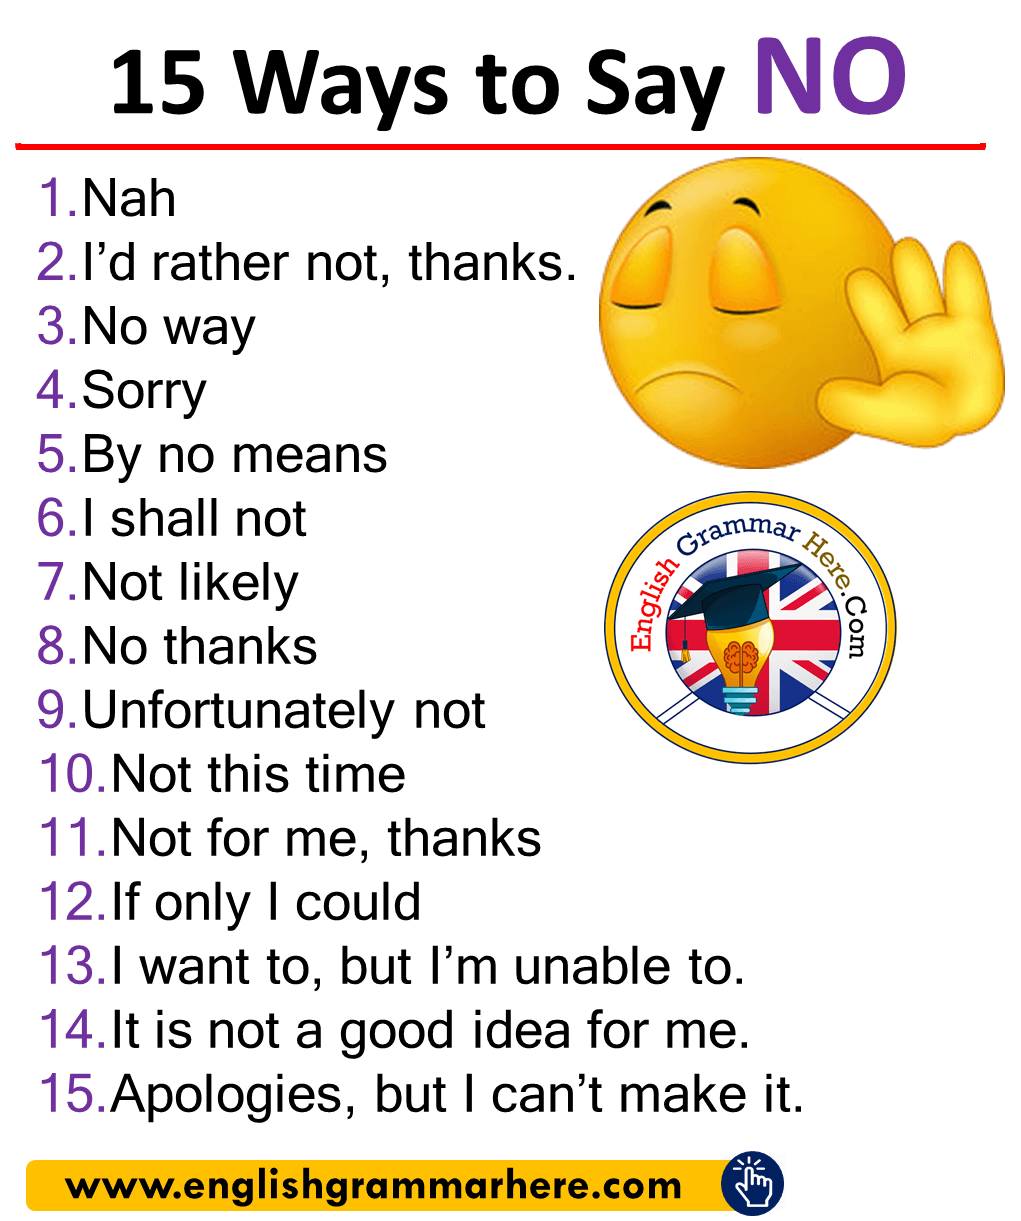 Different Ways to Say NO in English